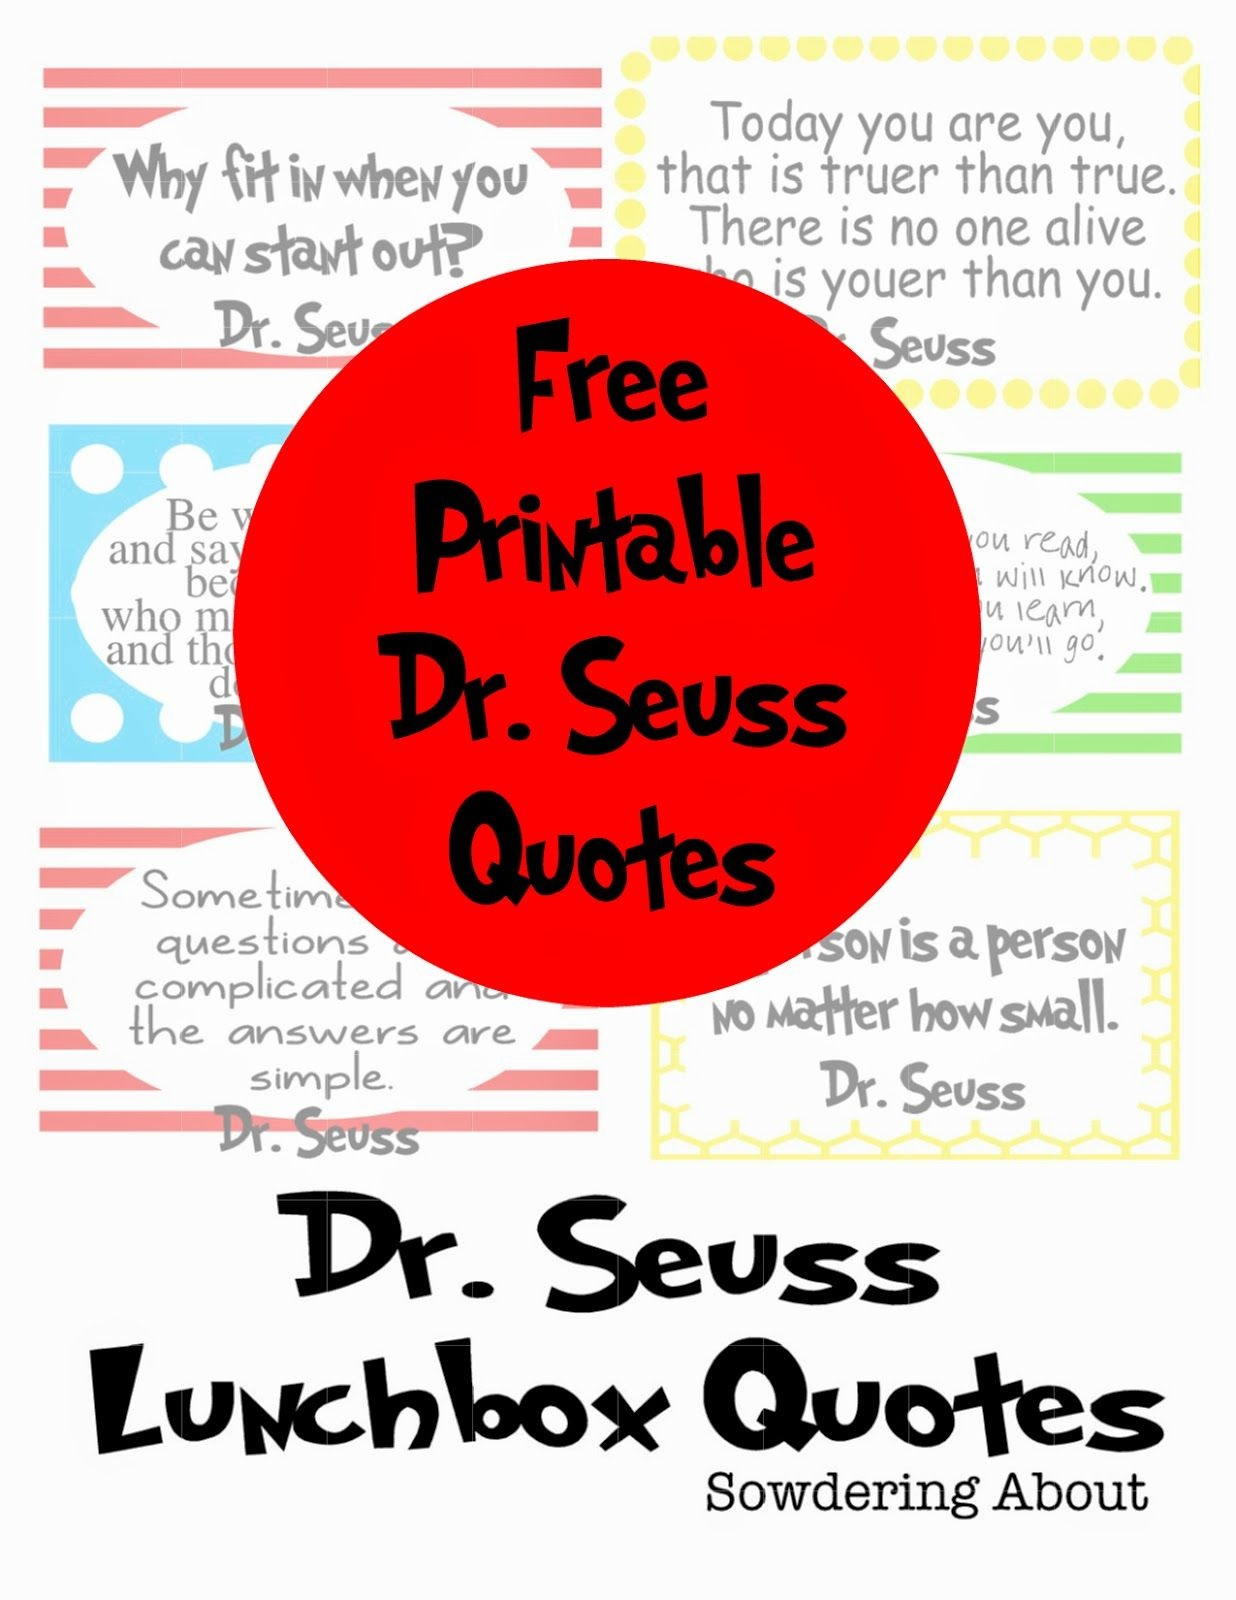 Dr. Seuss Quotes; Free Printables | Do It Yourself Today | Dr Seuss - Free Printable Dr Seuss Quotes